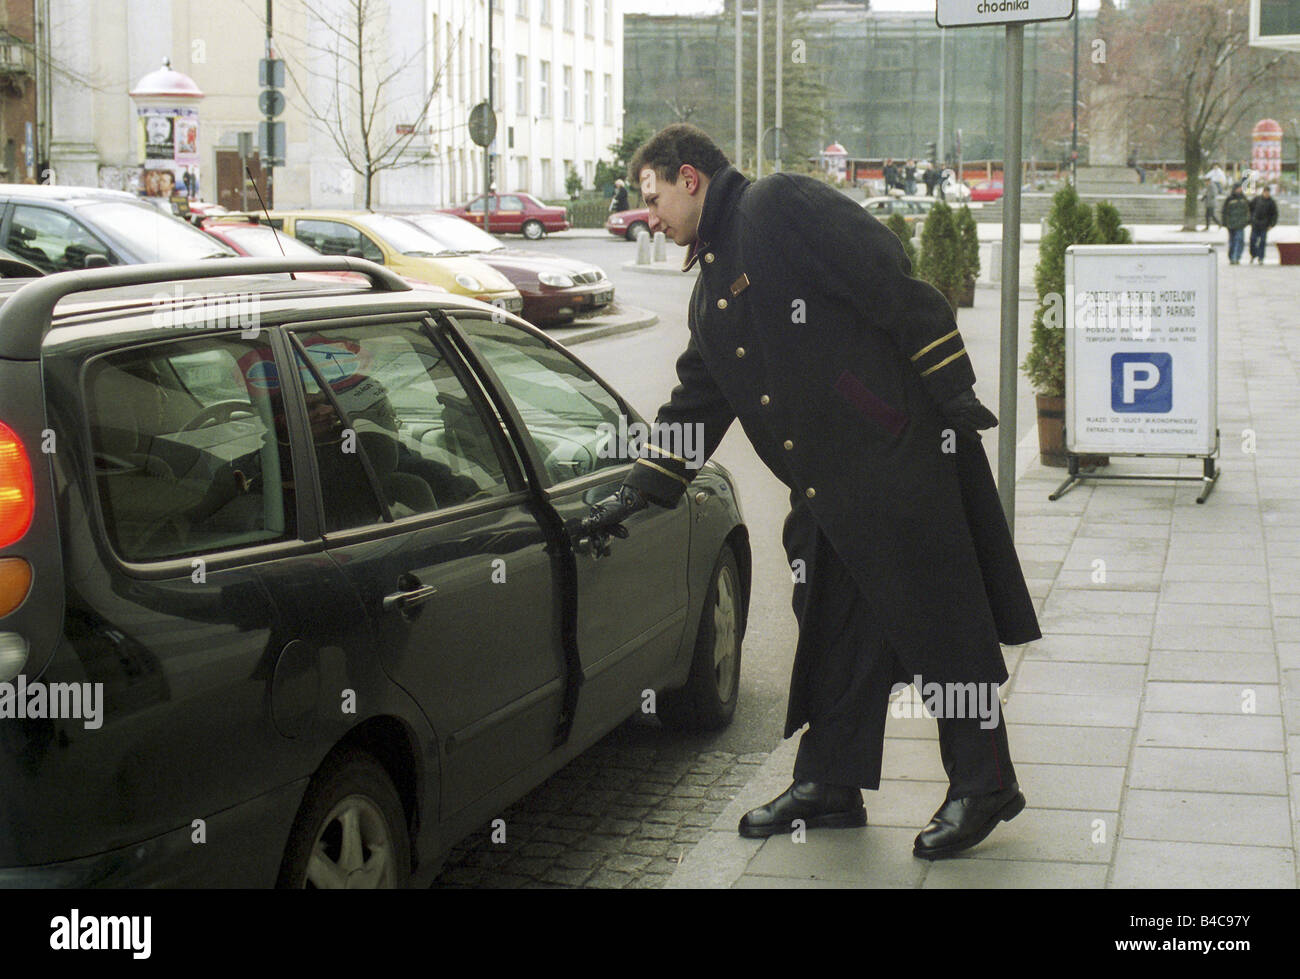 A doorman of the Sheraton Hotel opening the car door for a guest, Warsaw, Poland - Stock Image